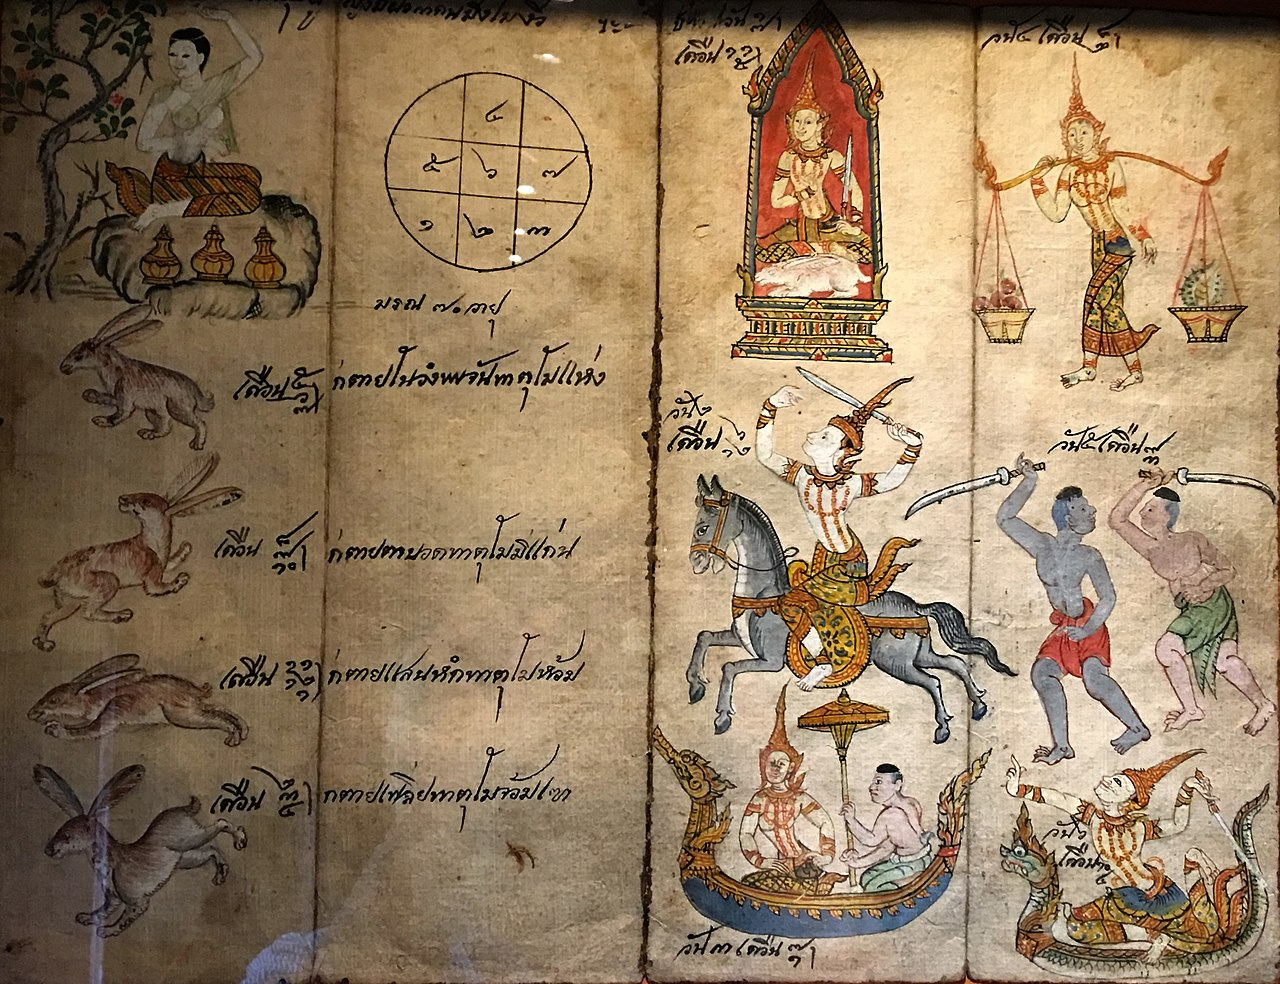 Astrology House Chart: Thai chinese astrology chart Jim Thompson Museum IMG 7233.jpg ,Chart